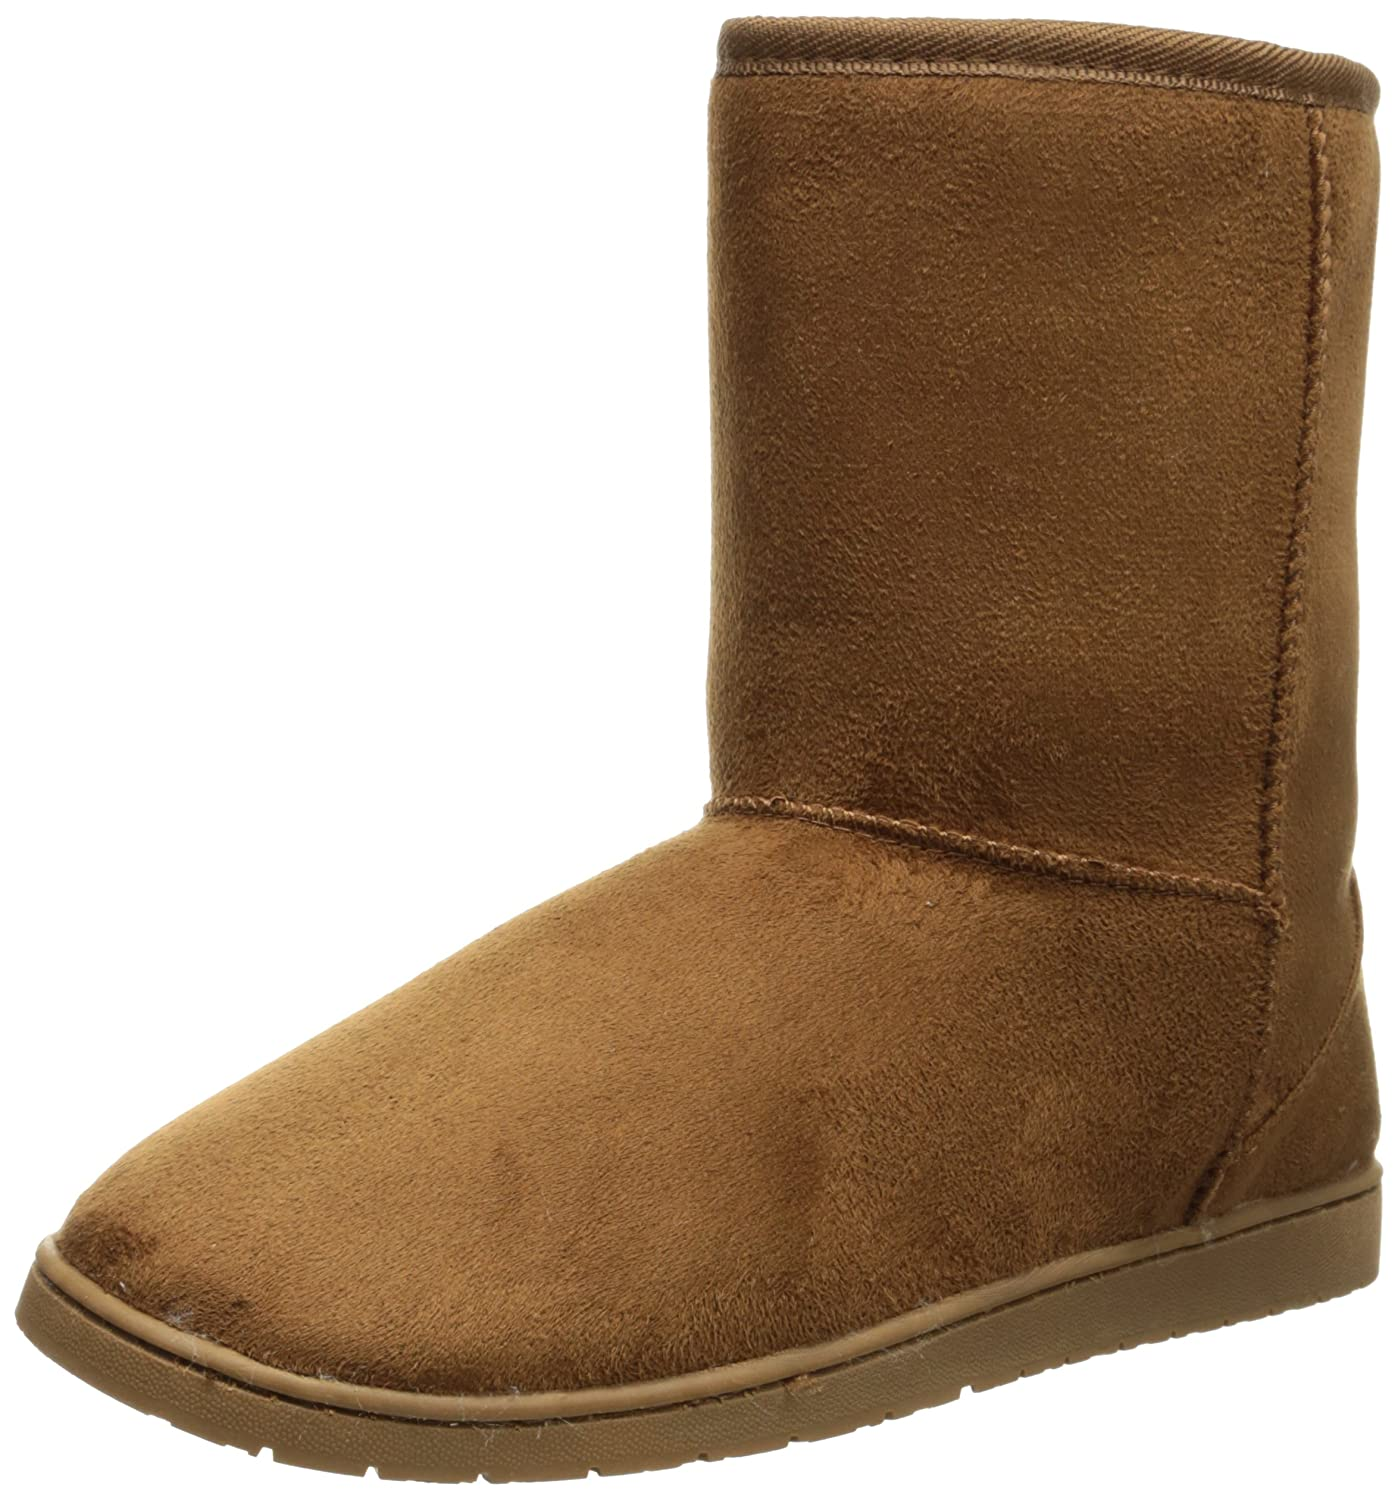 DAWGS Womens 9 Inch Winter Faux Shearling Microfiber Vegan Winter Inch Boots B001KIW5HC 9 B(M) US|Chestnut 7bbfad